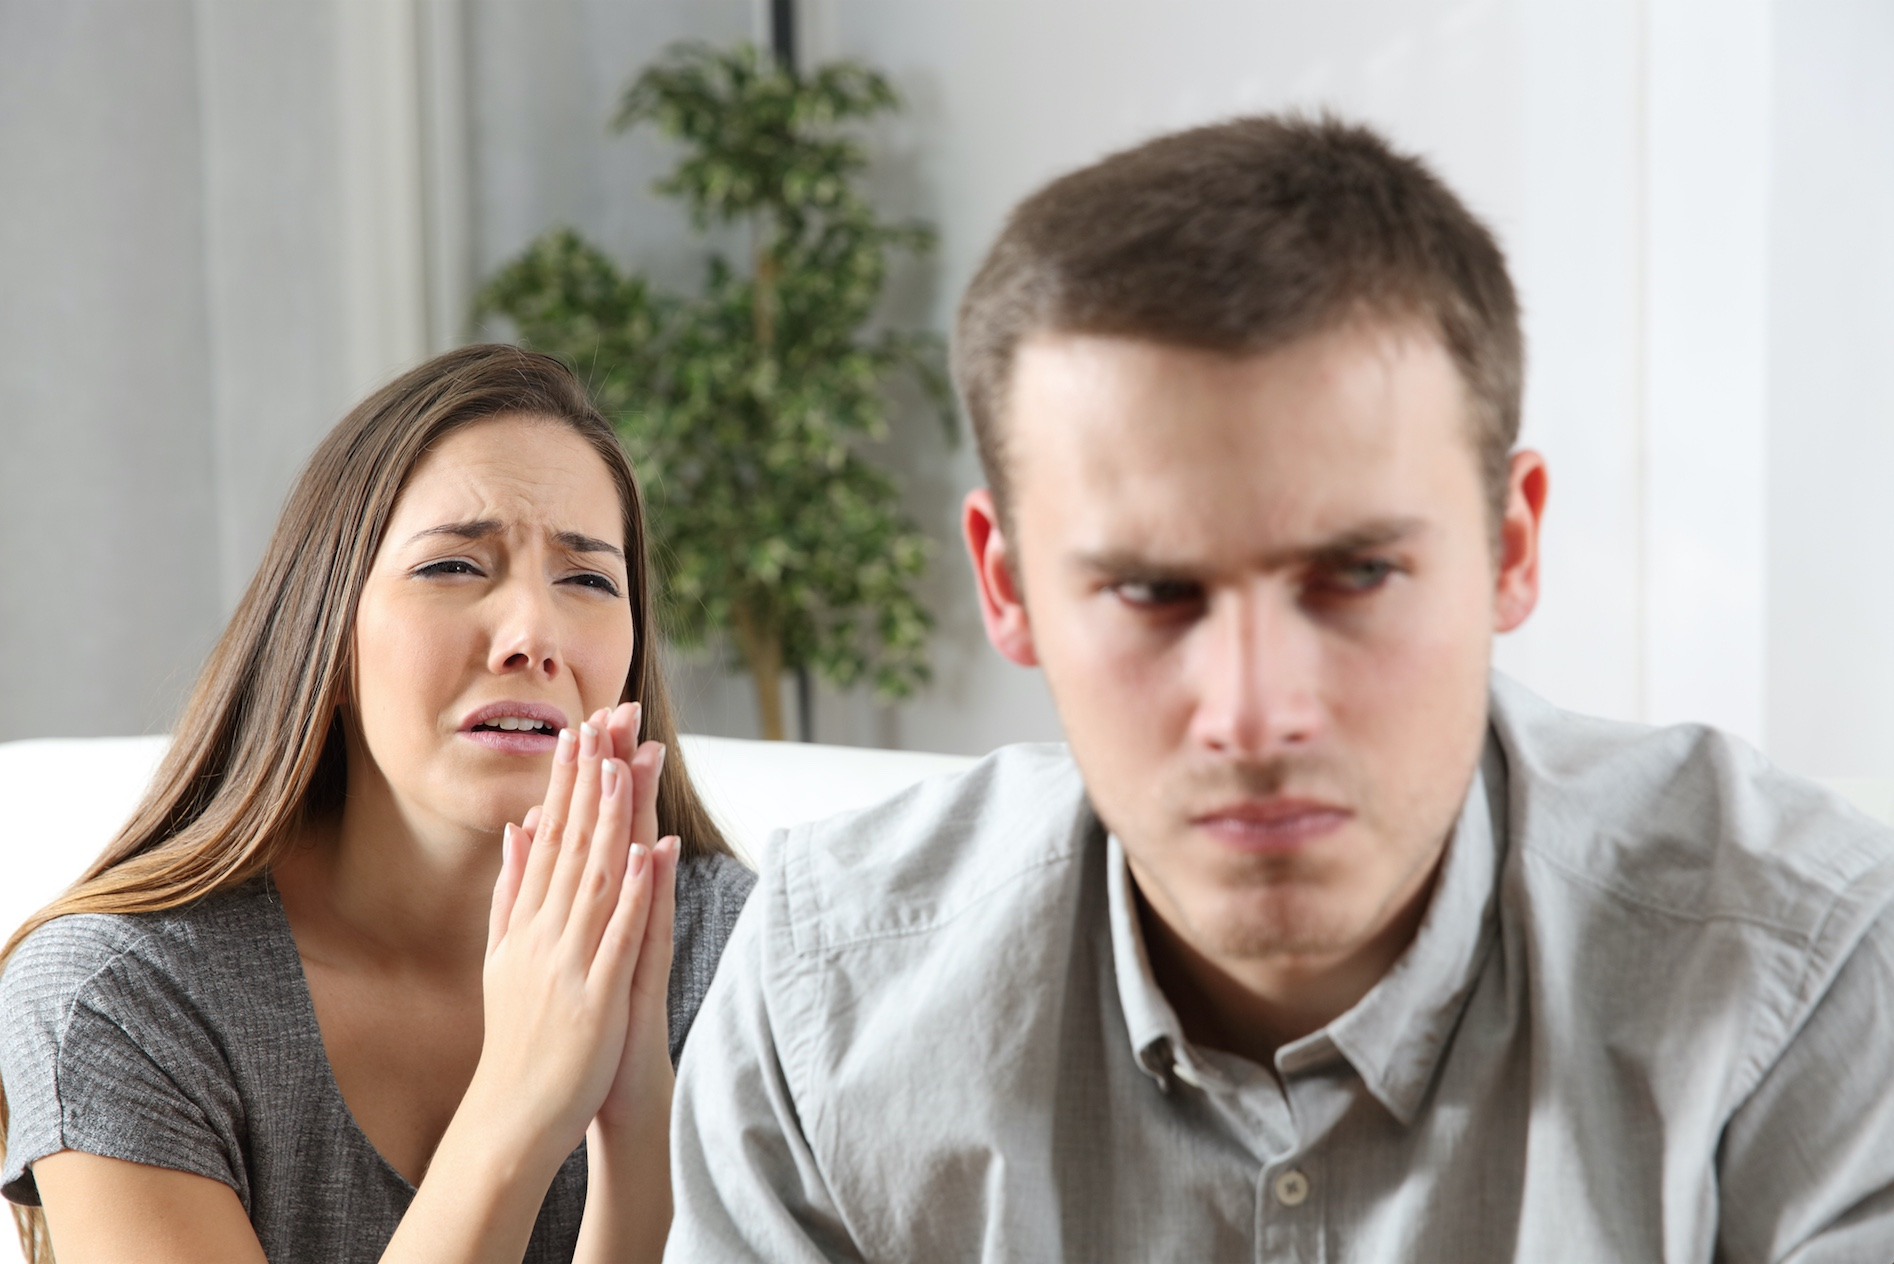 My Wife Cheated On Me - What Should I Do Now?